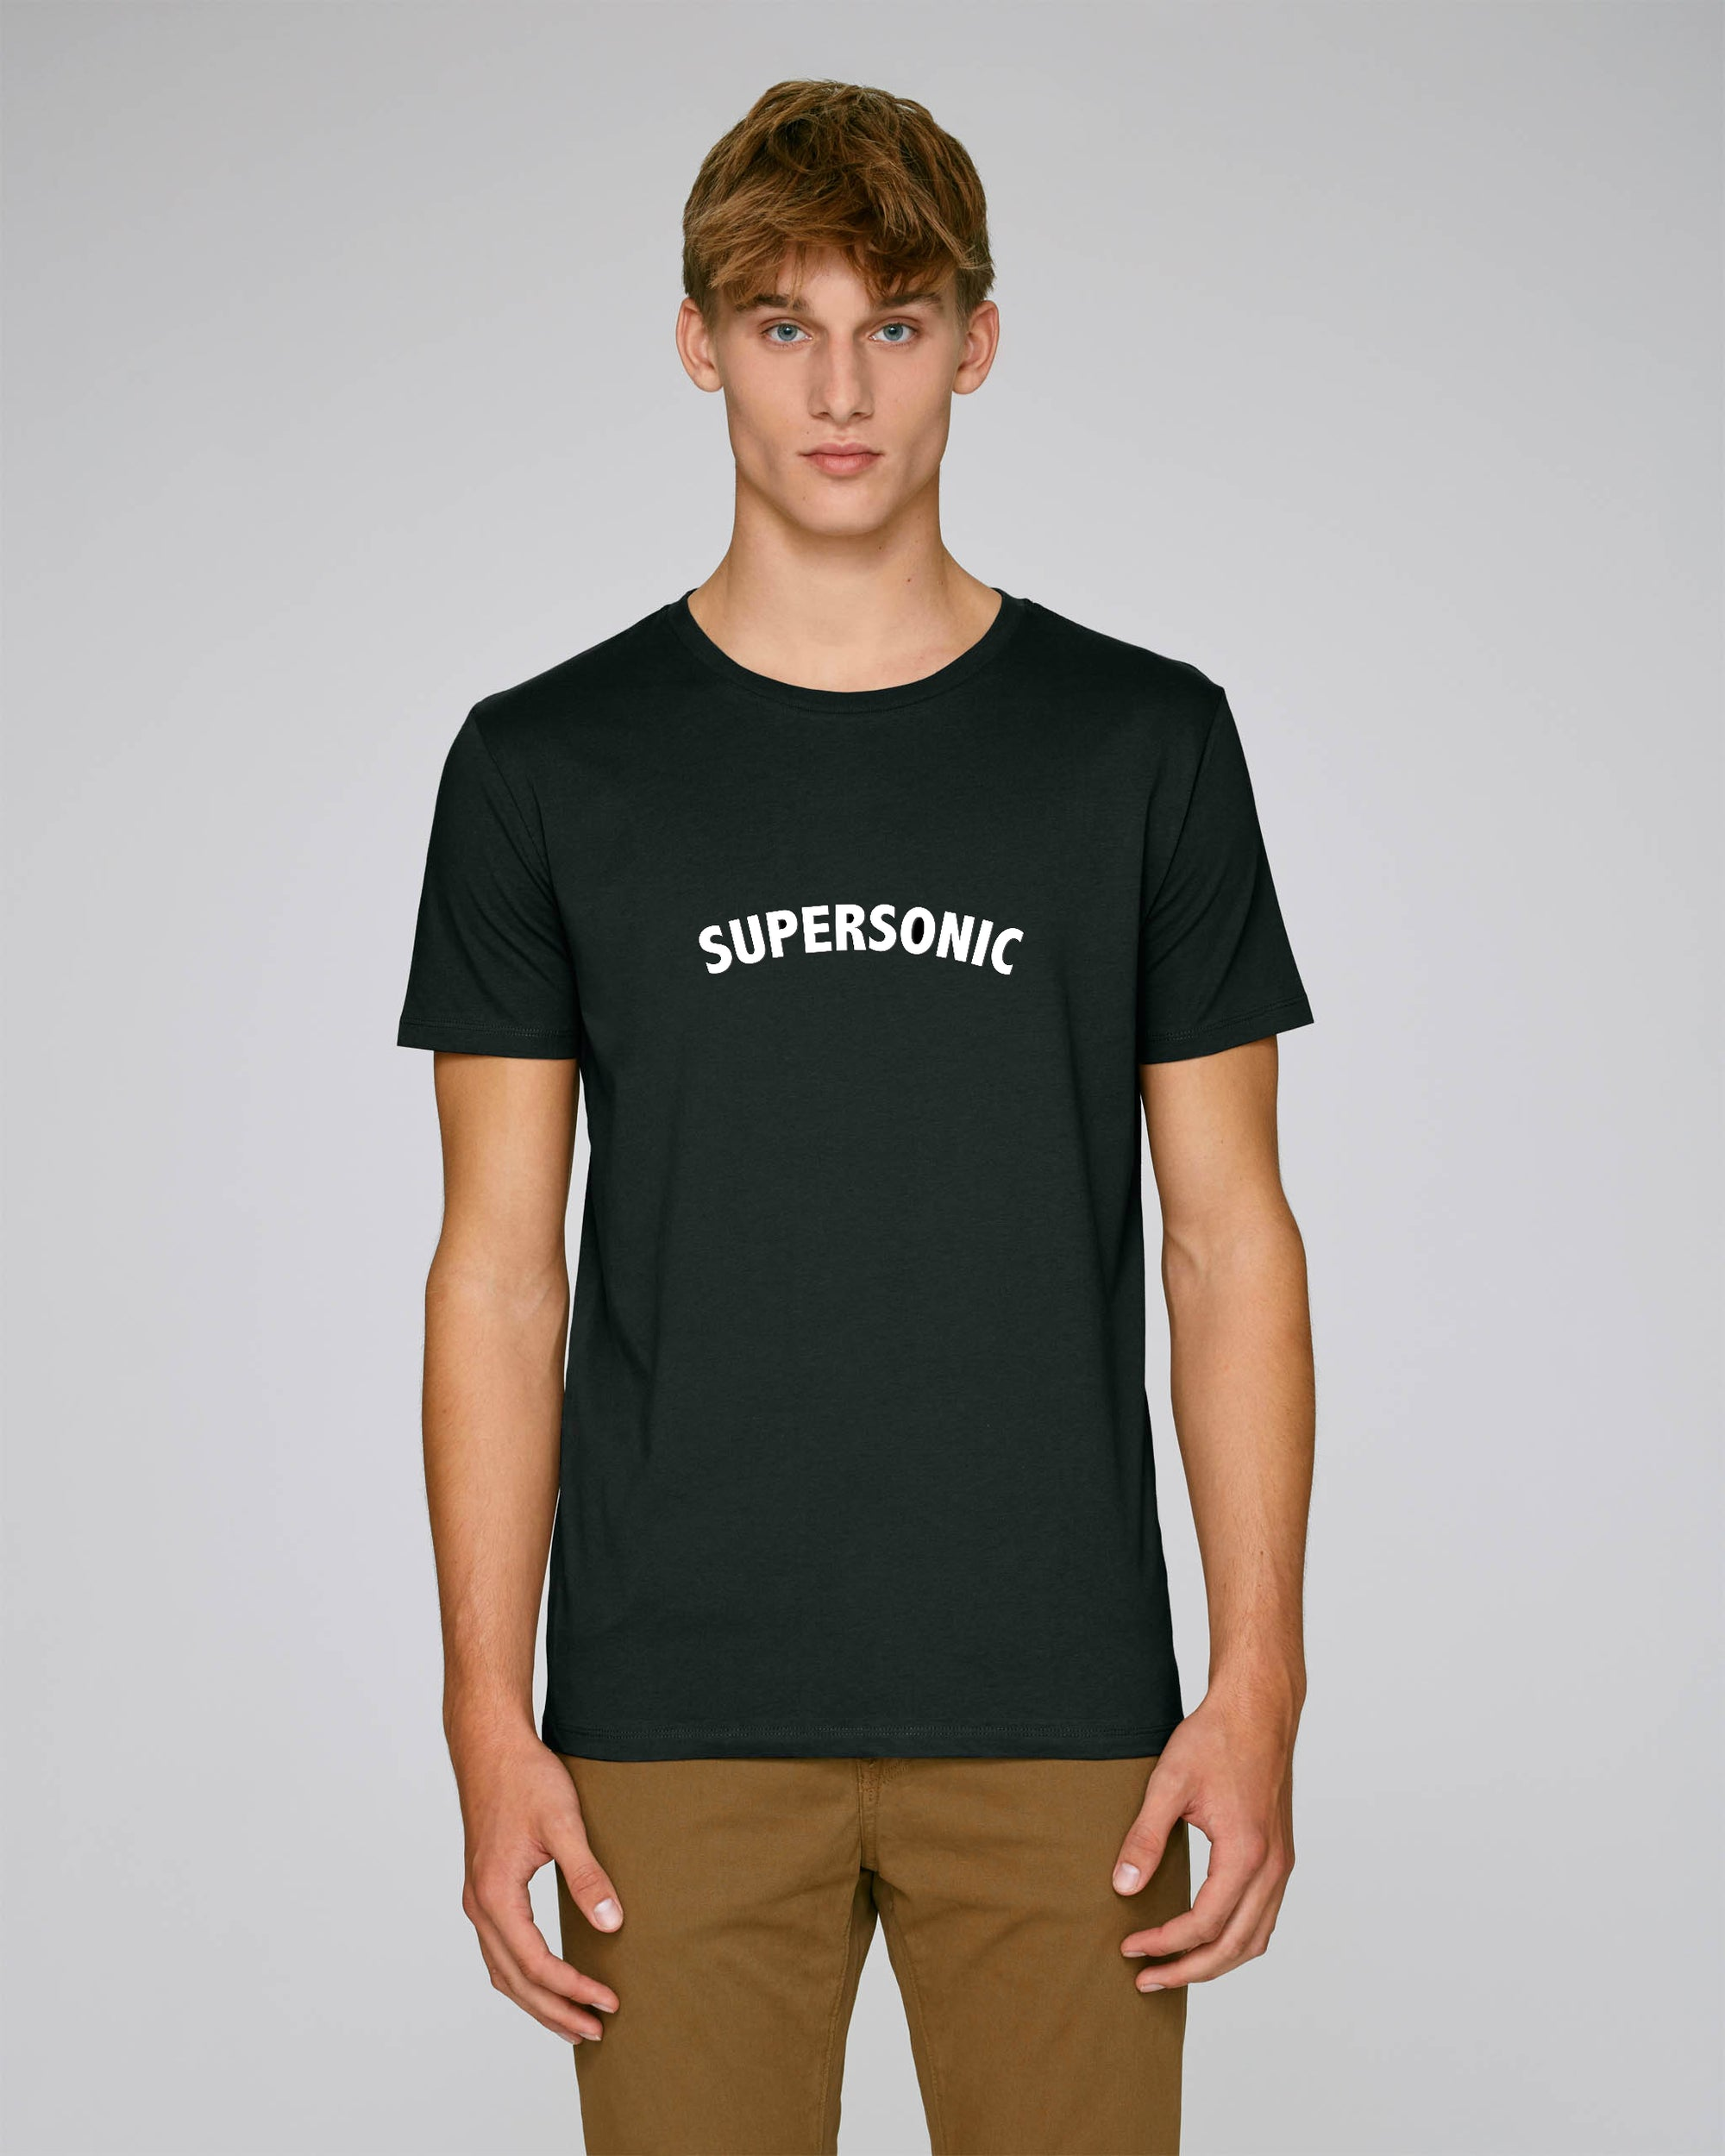 'SUPERSONIC' EMBROIDERED FITTED ORGANIC COTTON UNISEX T-SHIRT